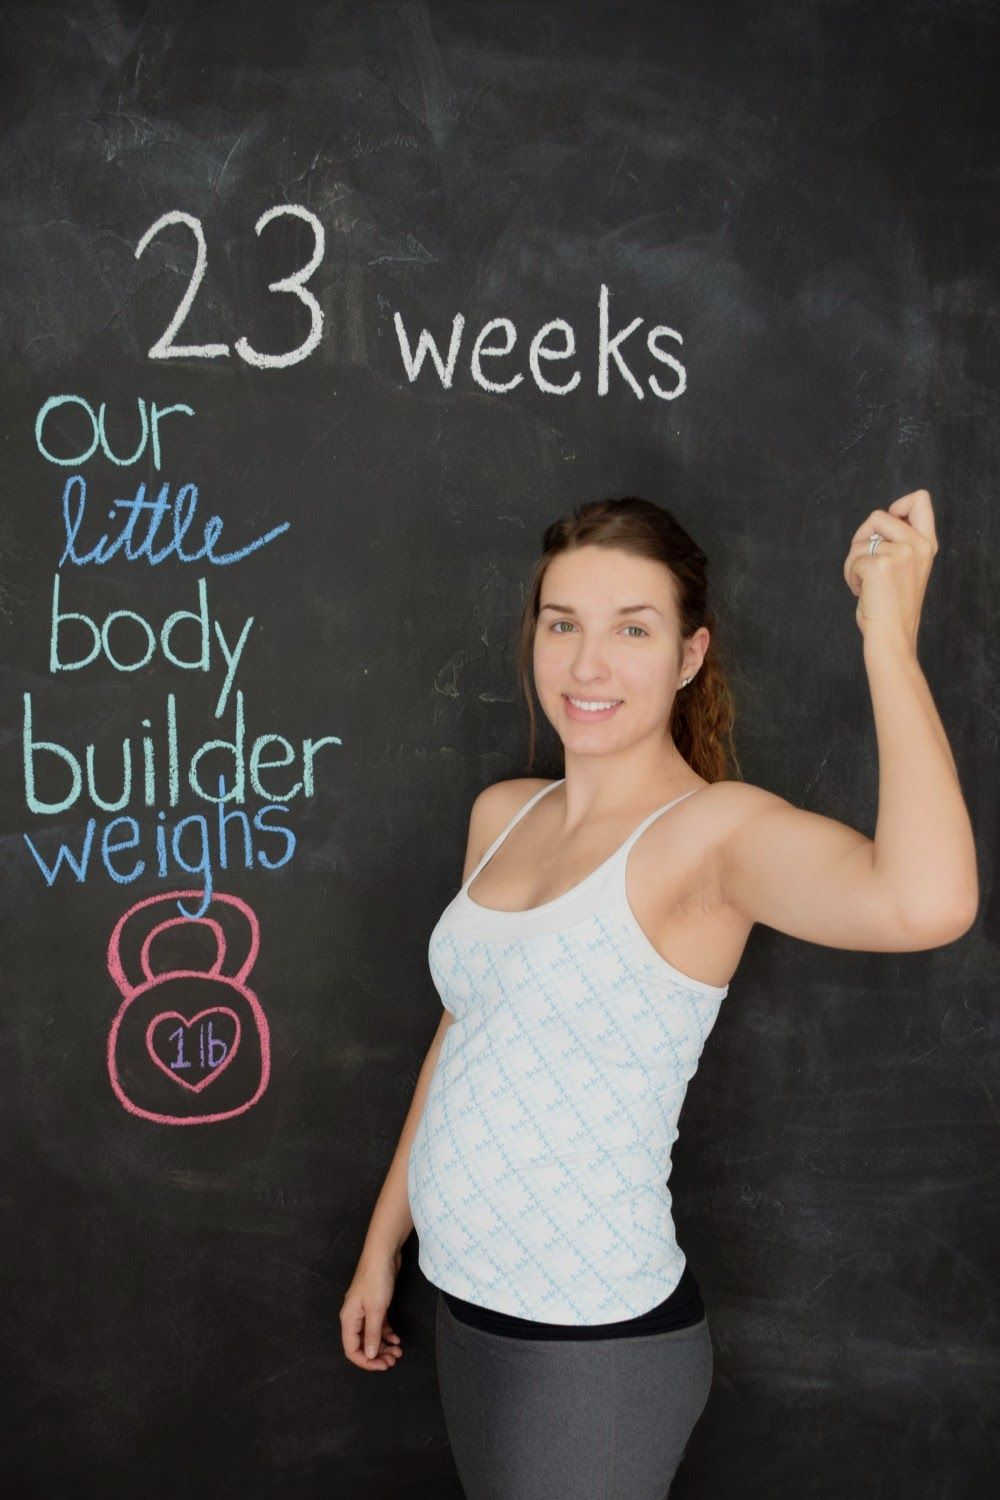 weekly baby bumpdate / 23 weeks / fit moms /fit pregnancy / baby weighs one  pound